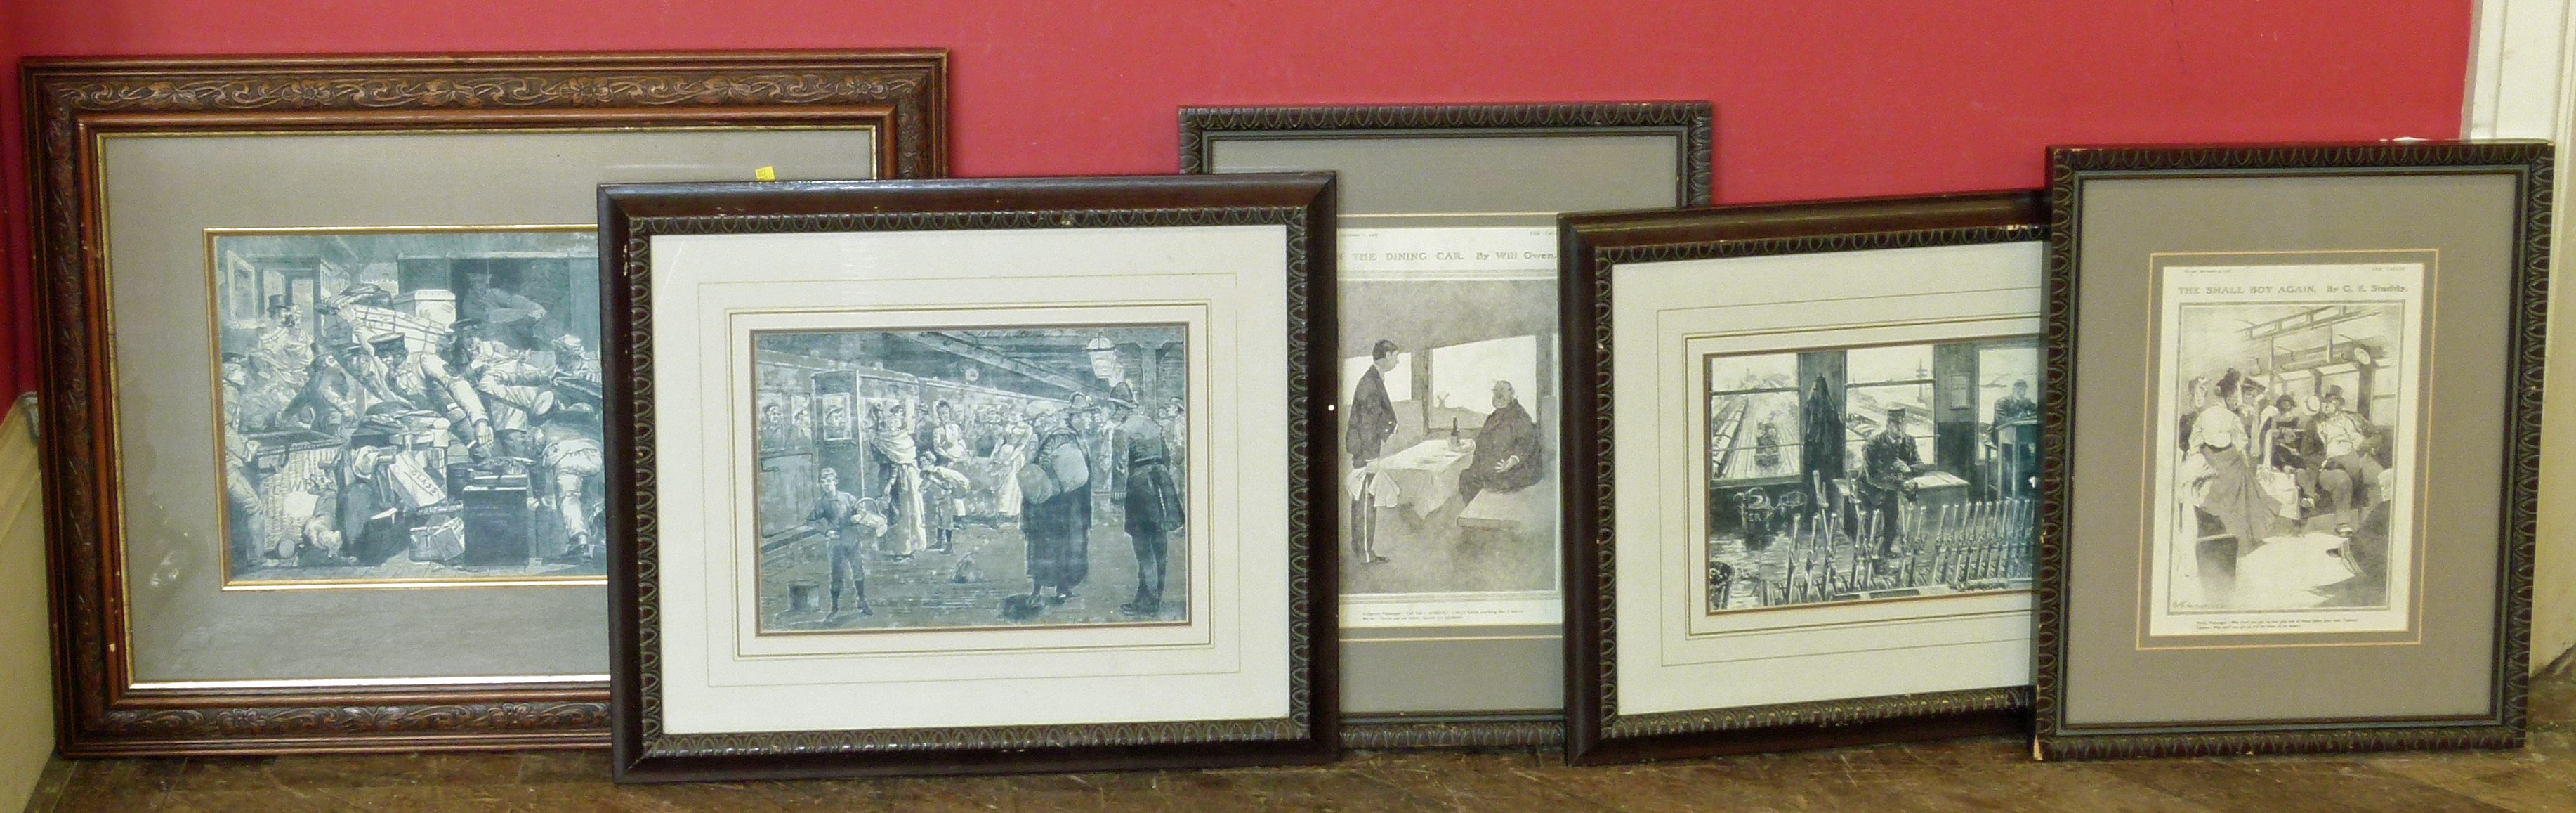 Lot 2 - Framed pages copies from the Tatler and illustrated London news We are unable to do condition